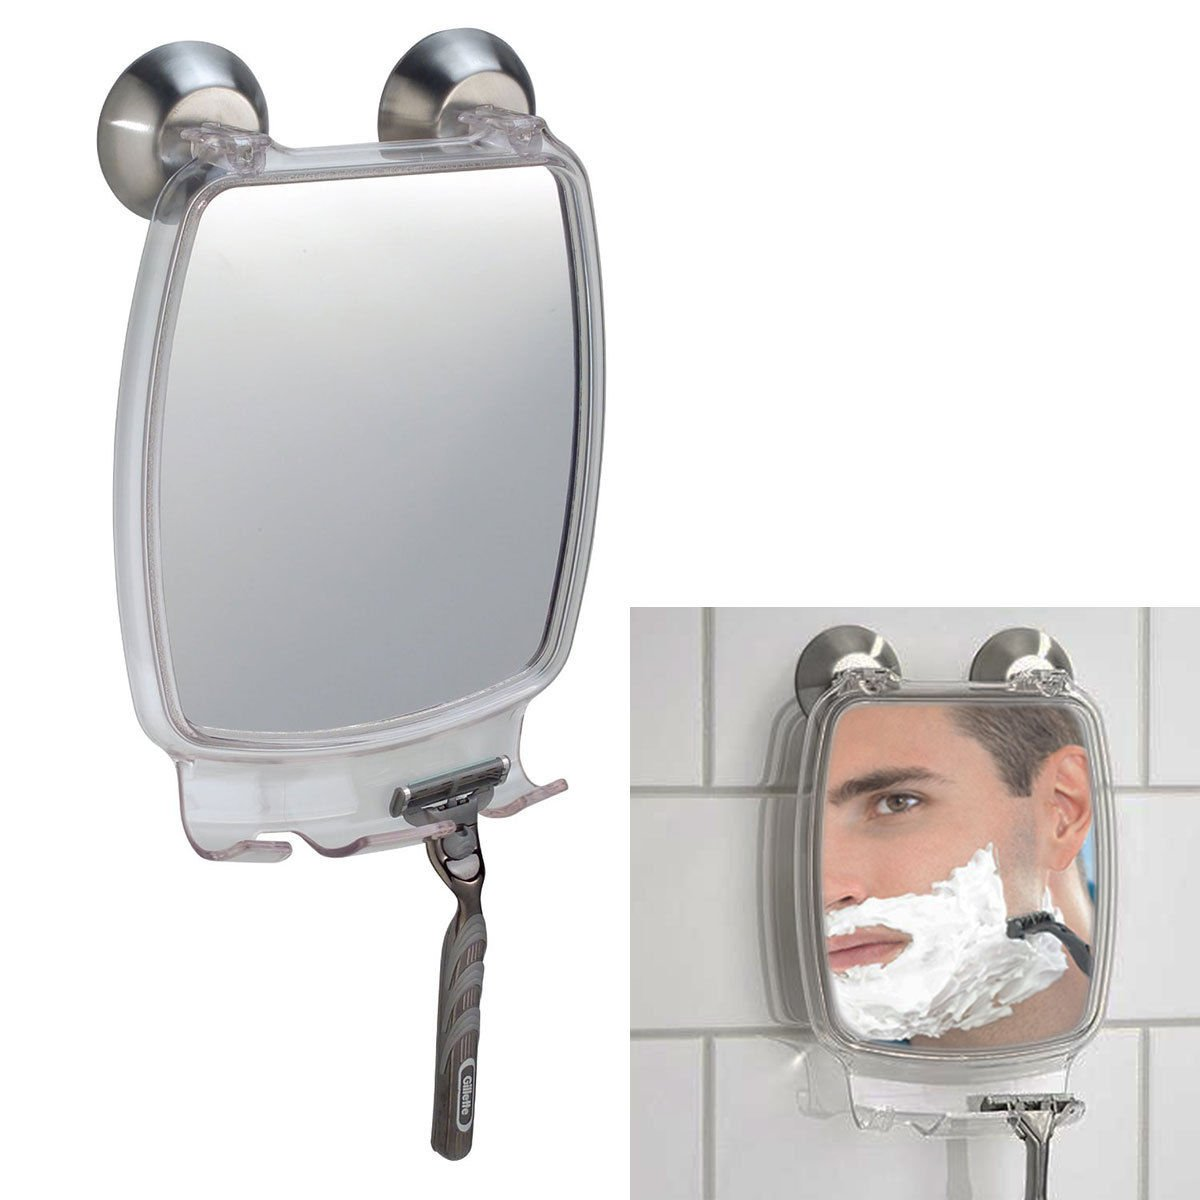 Fog Free Shower Shaving Rectangular Mirror - with Power Lock Suction Mount